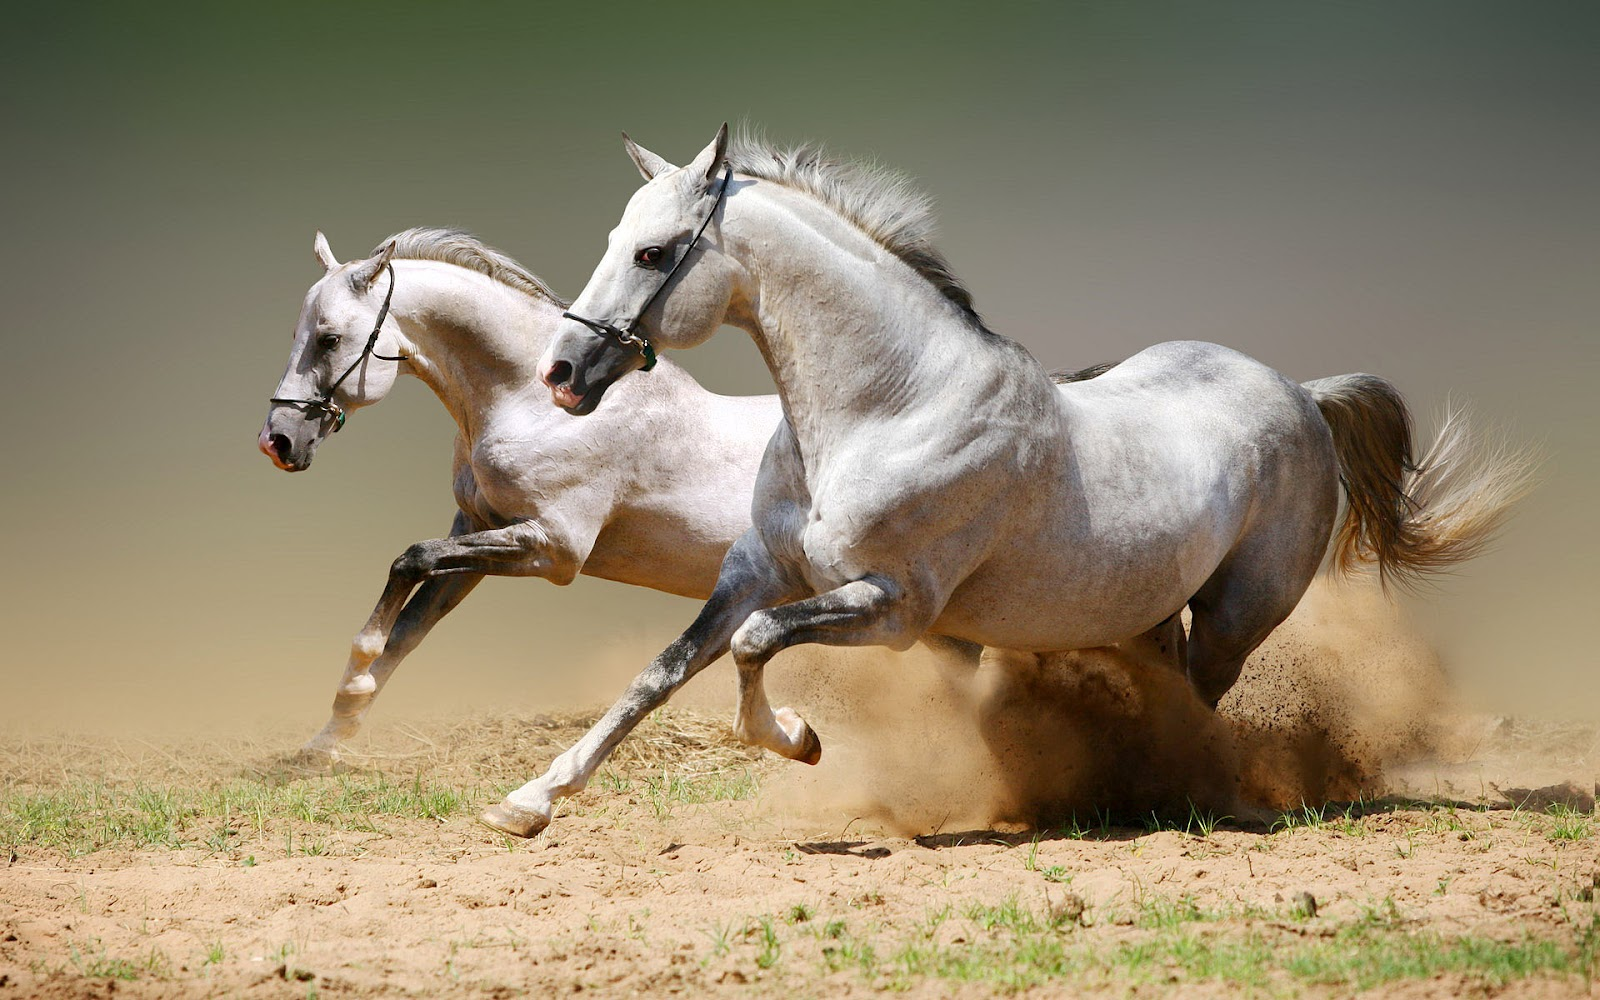 HD animal wallpaper with white horses running fast | Horse wallpaper 1075